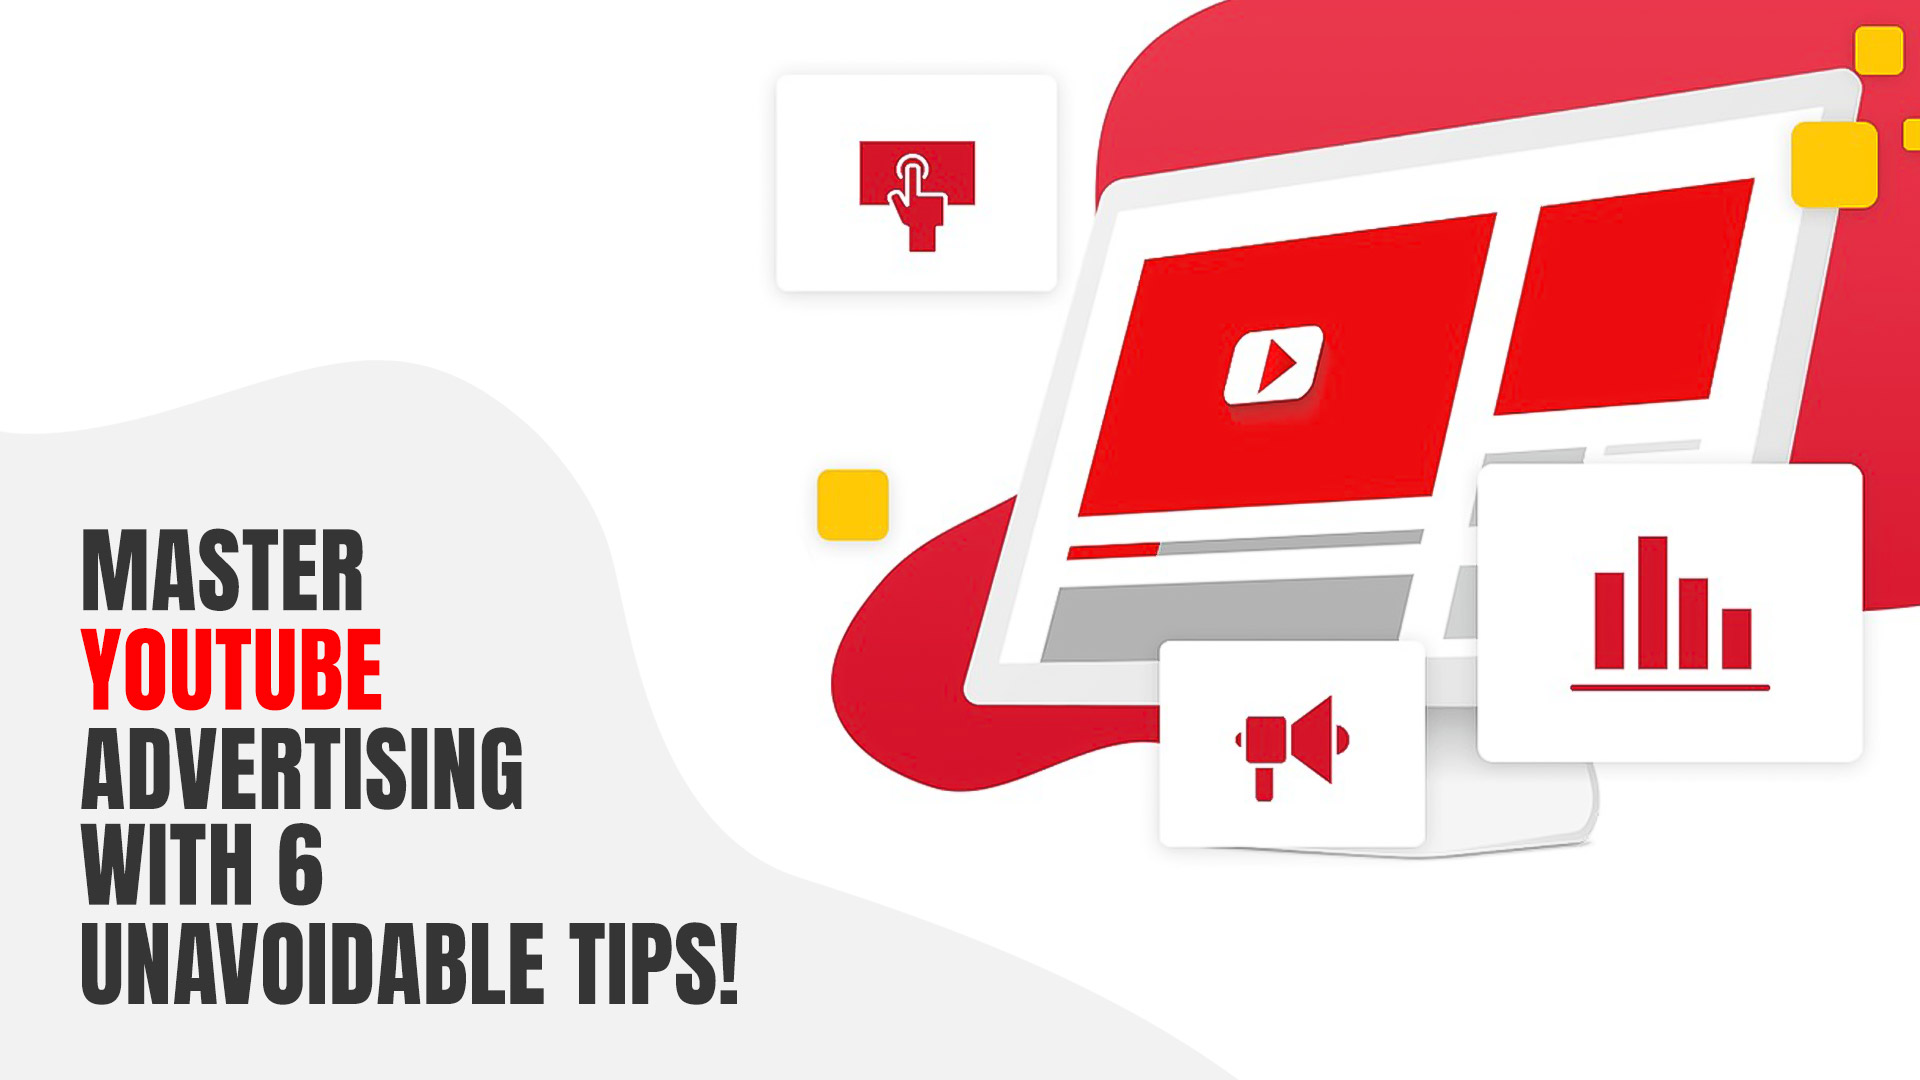 Master YouTube Advertising with 6 Unavoidable Tips